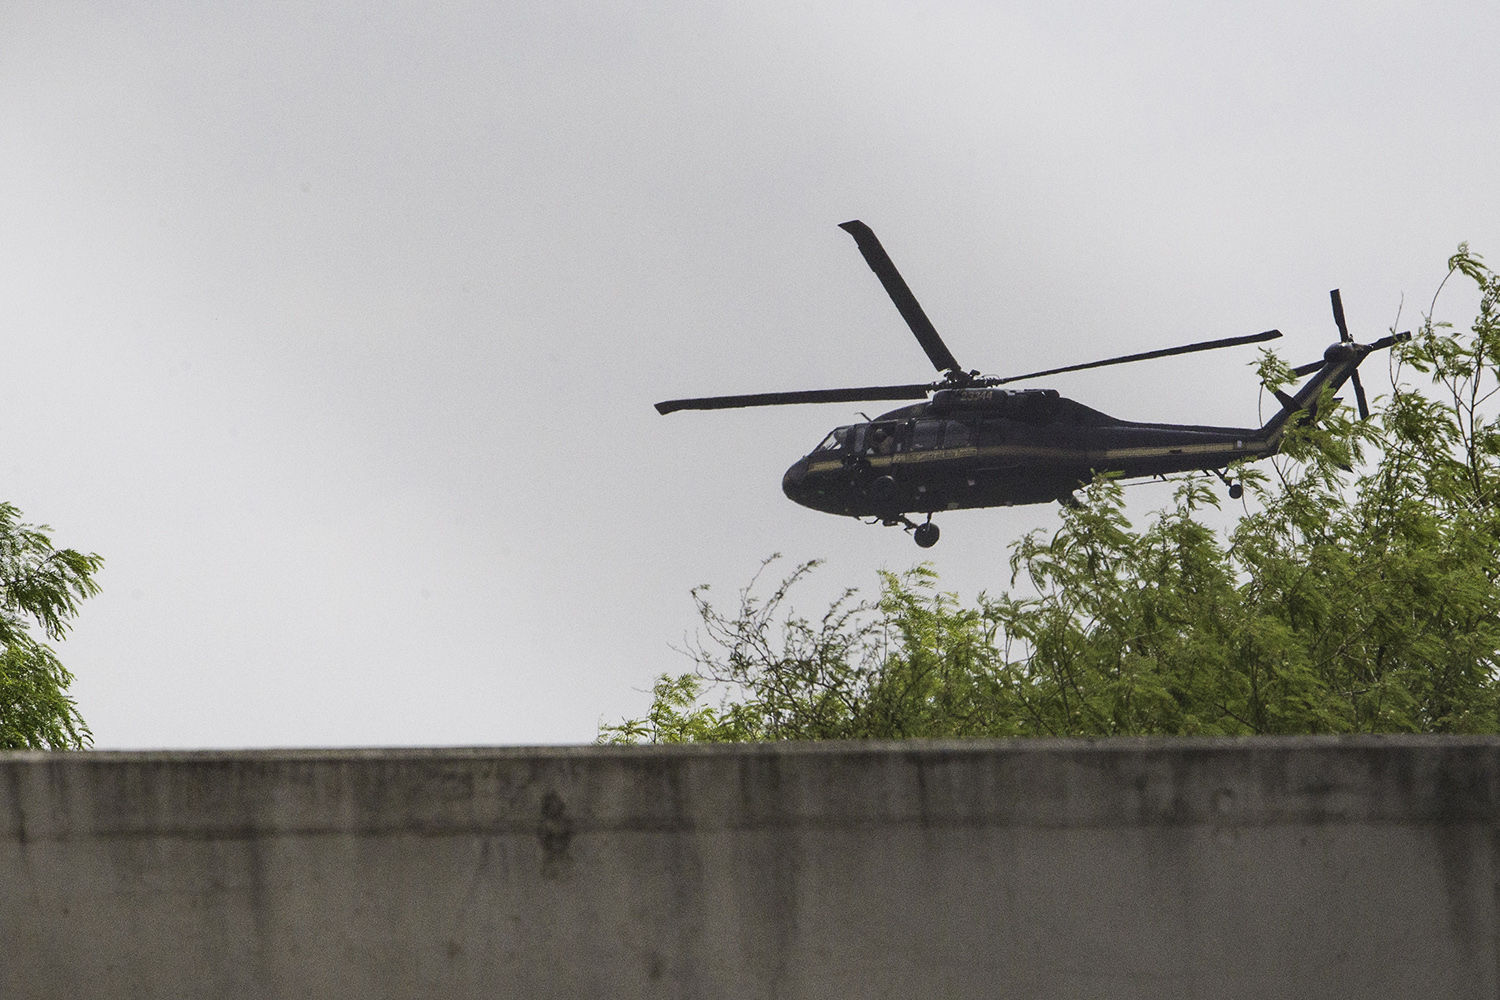 A Department of Homeland Security Blackhawk helicopter flying near Hidalgo, swoops low over the Rio Grande above the border wall built in 2008.